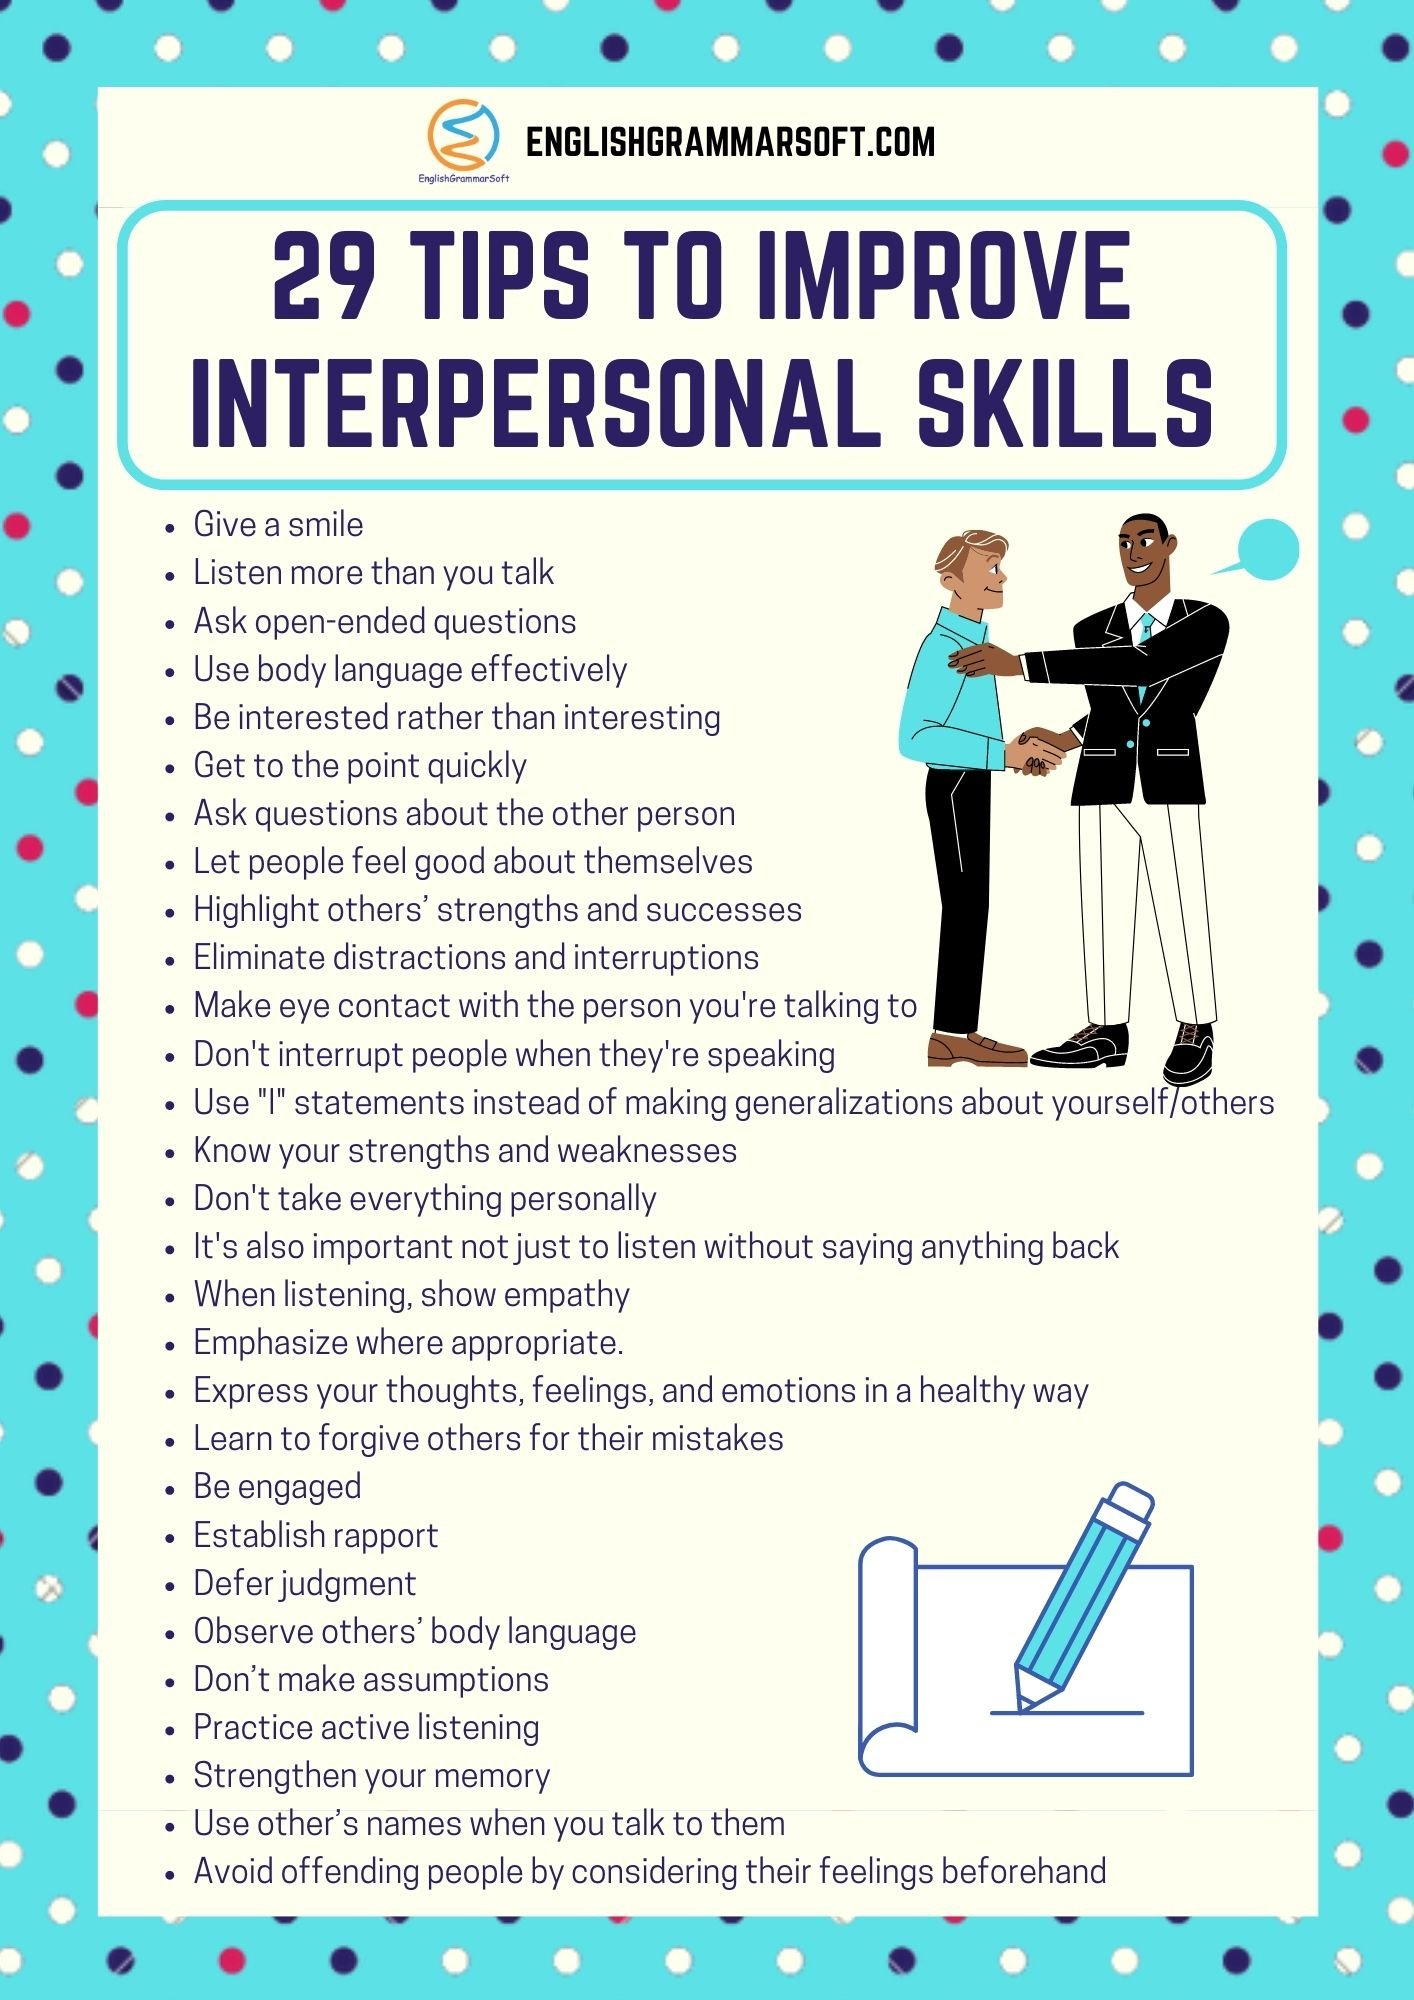 29 Simple Tips to Improve Interpersonal Skills